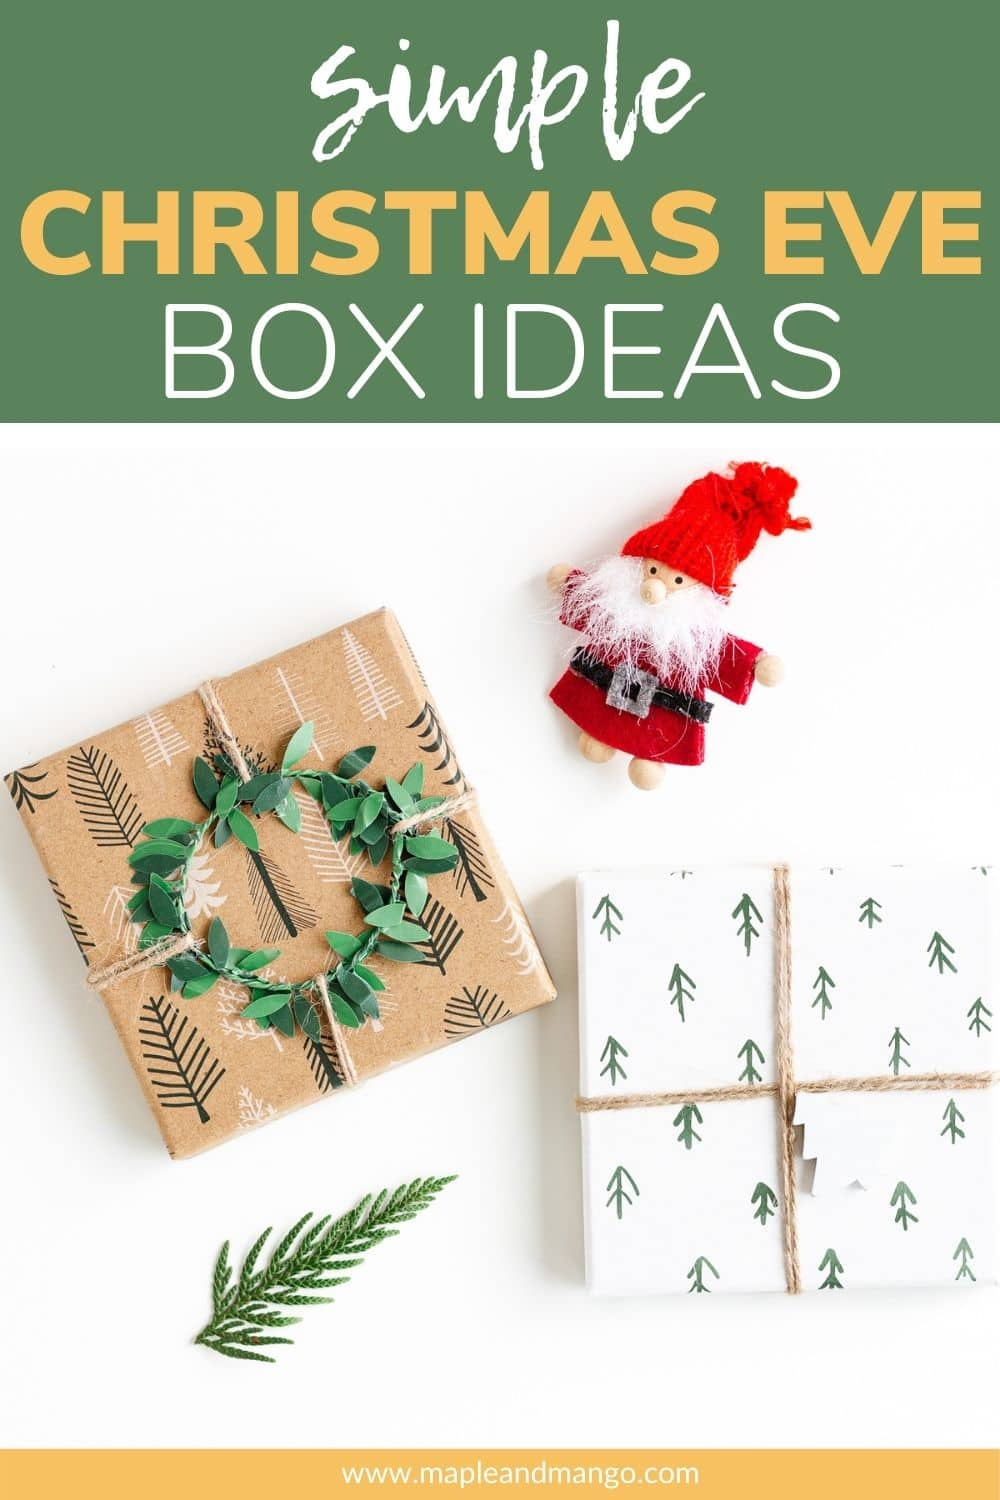 Pinterest graphic for simple Christmas Eve box ideas.